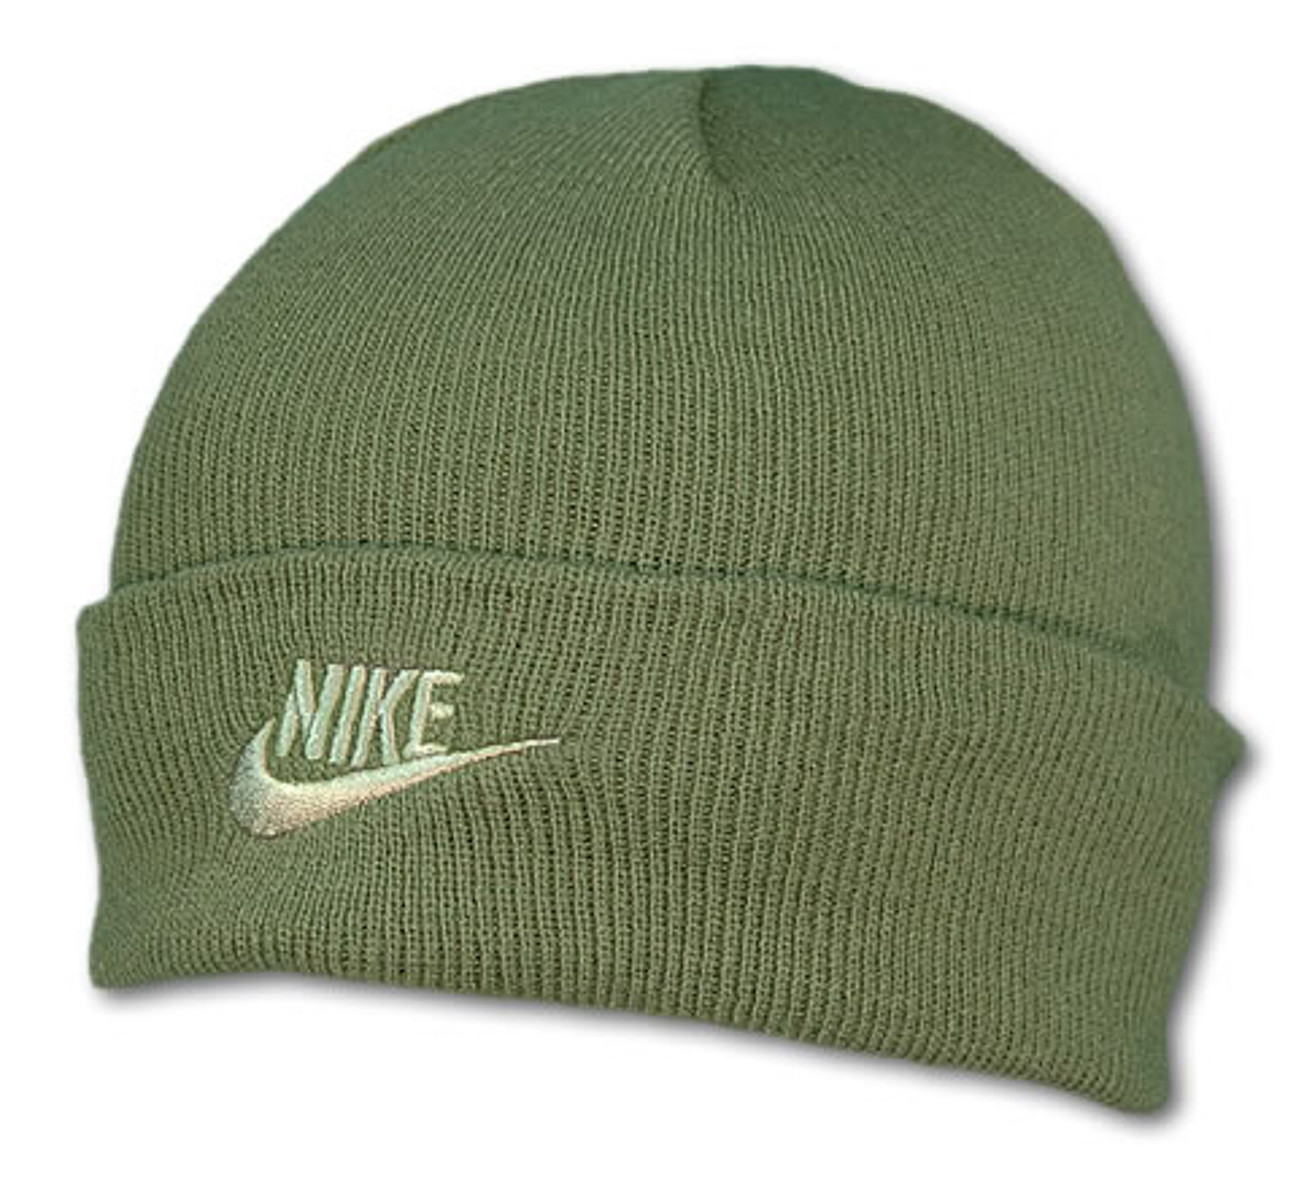 Elegant Iconic Winter Knit Hat by Nike Eur 19 95 Hats Caps Winter Knit Hats Of Charming 40 Photos Winter Knit Hats